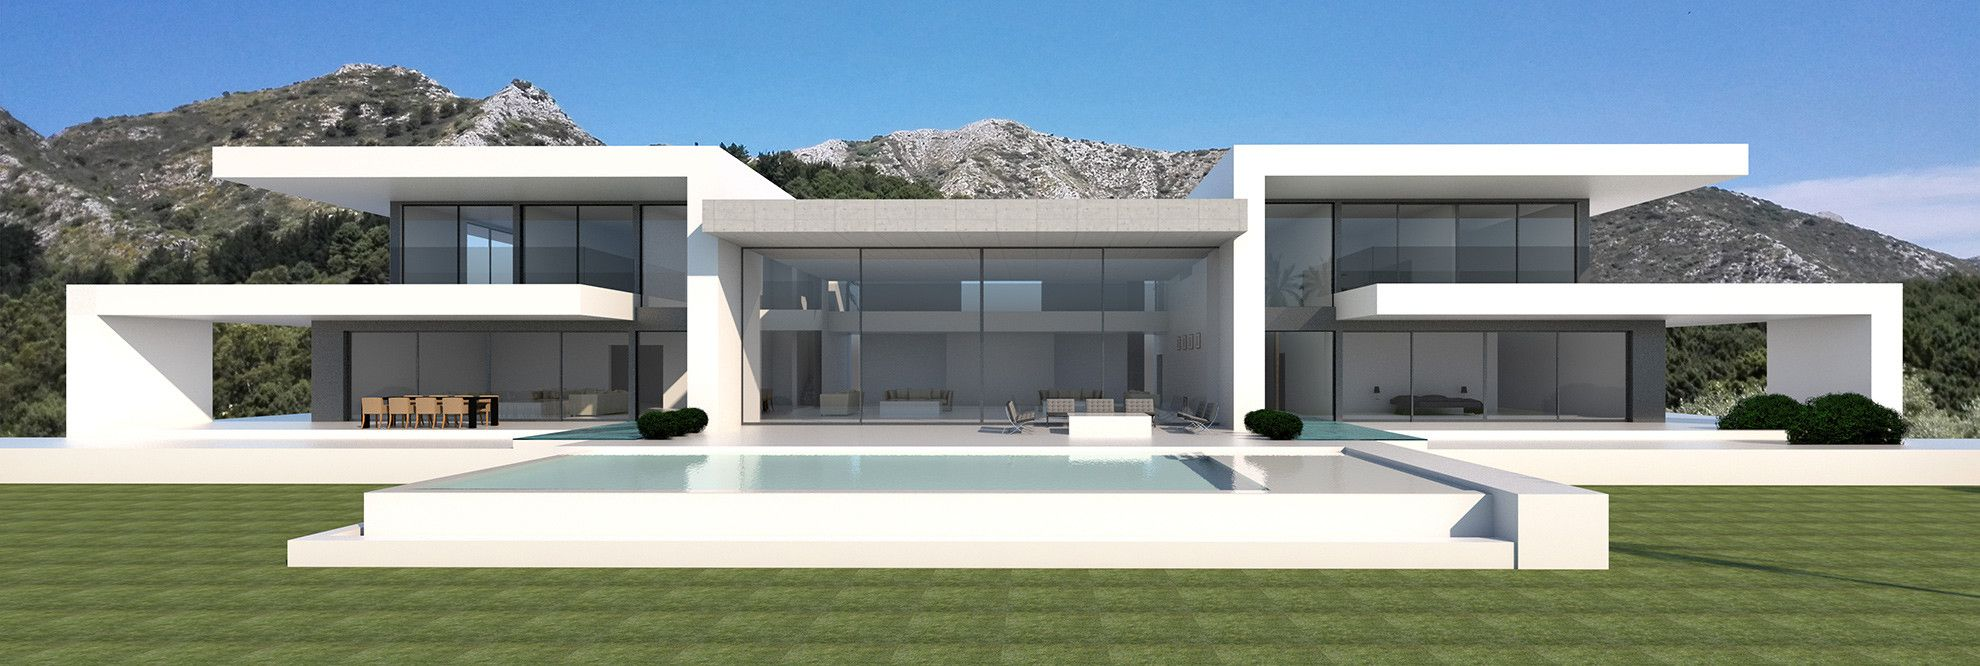 Eagles House Modern Turnkey Villa Modern Villa Design Modern